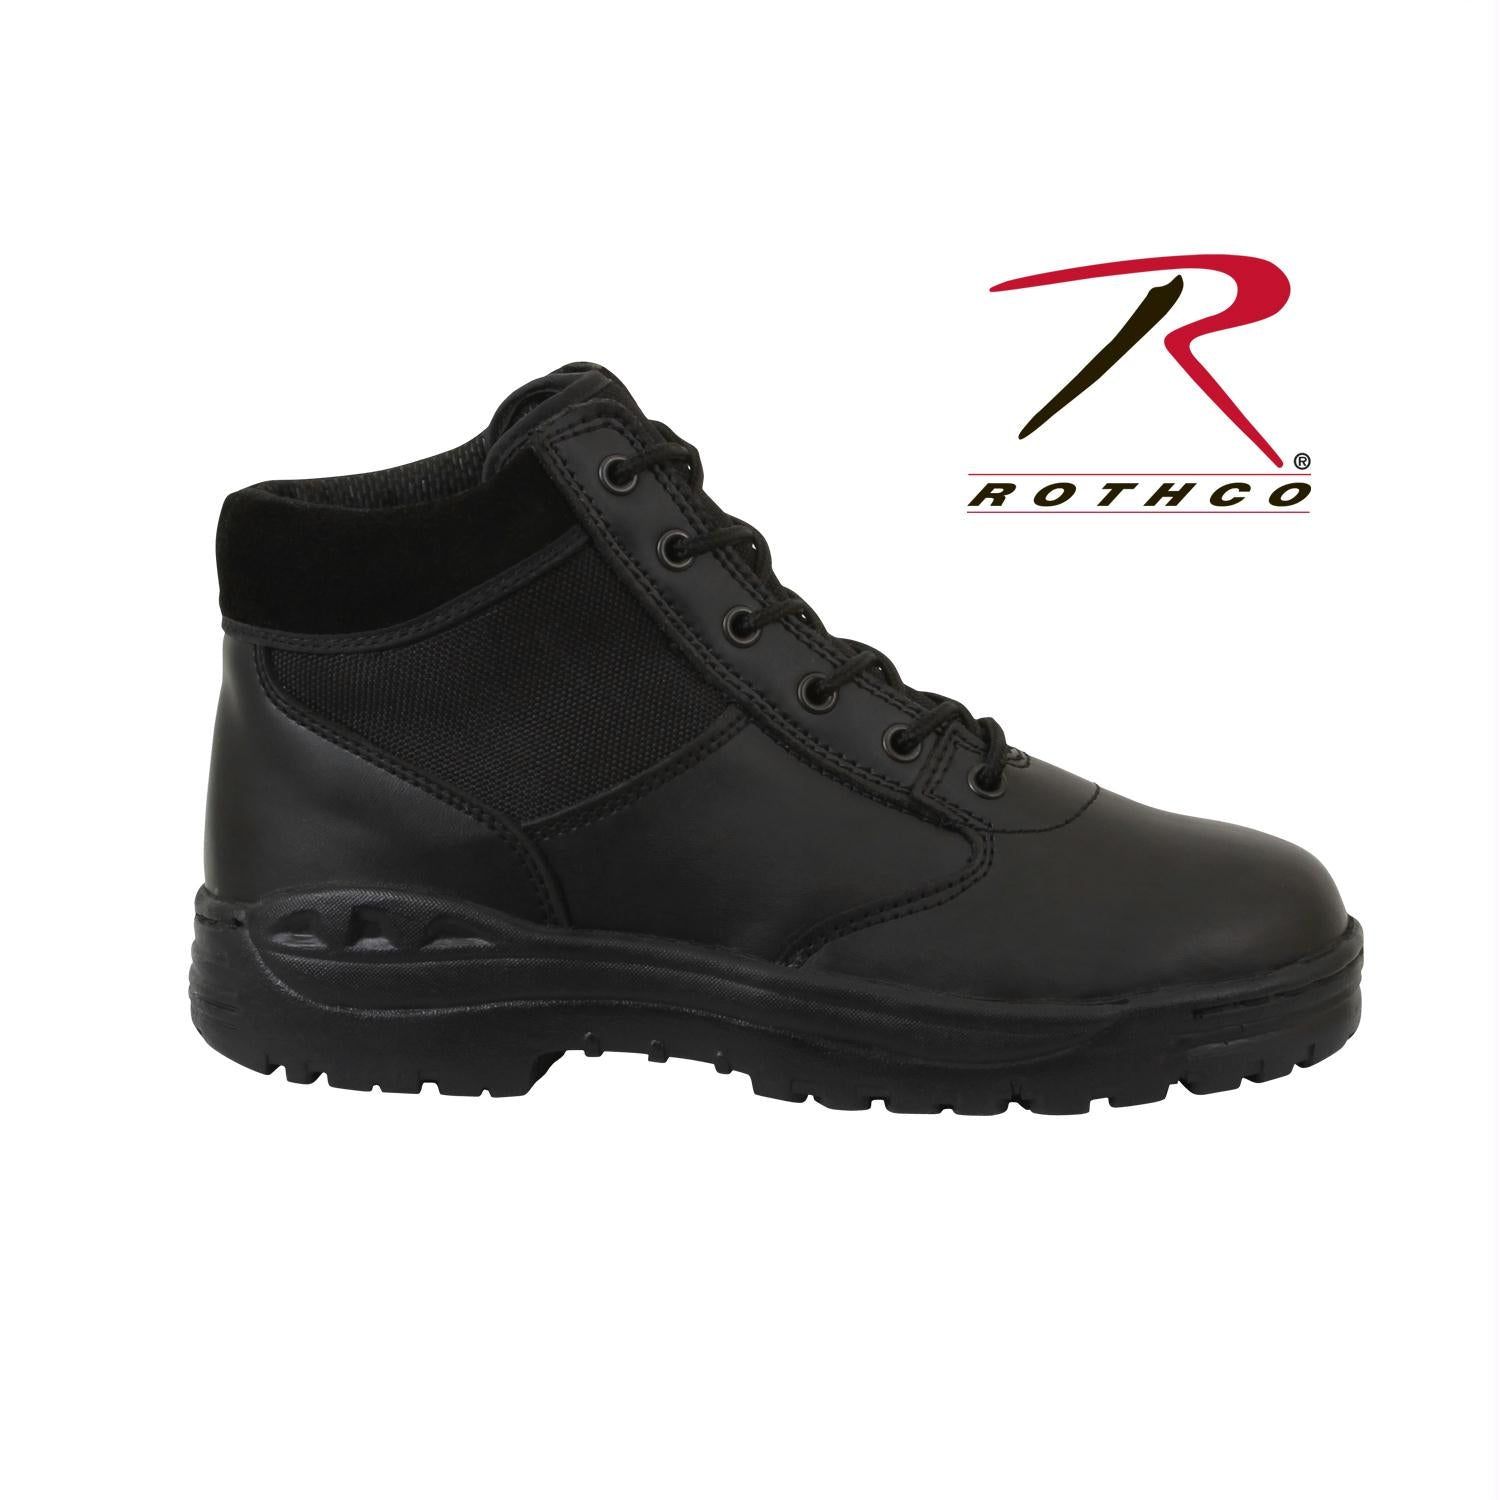 Rothco Forced Entry Security Boot / 6'' - 12